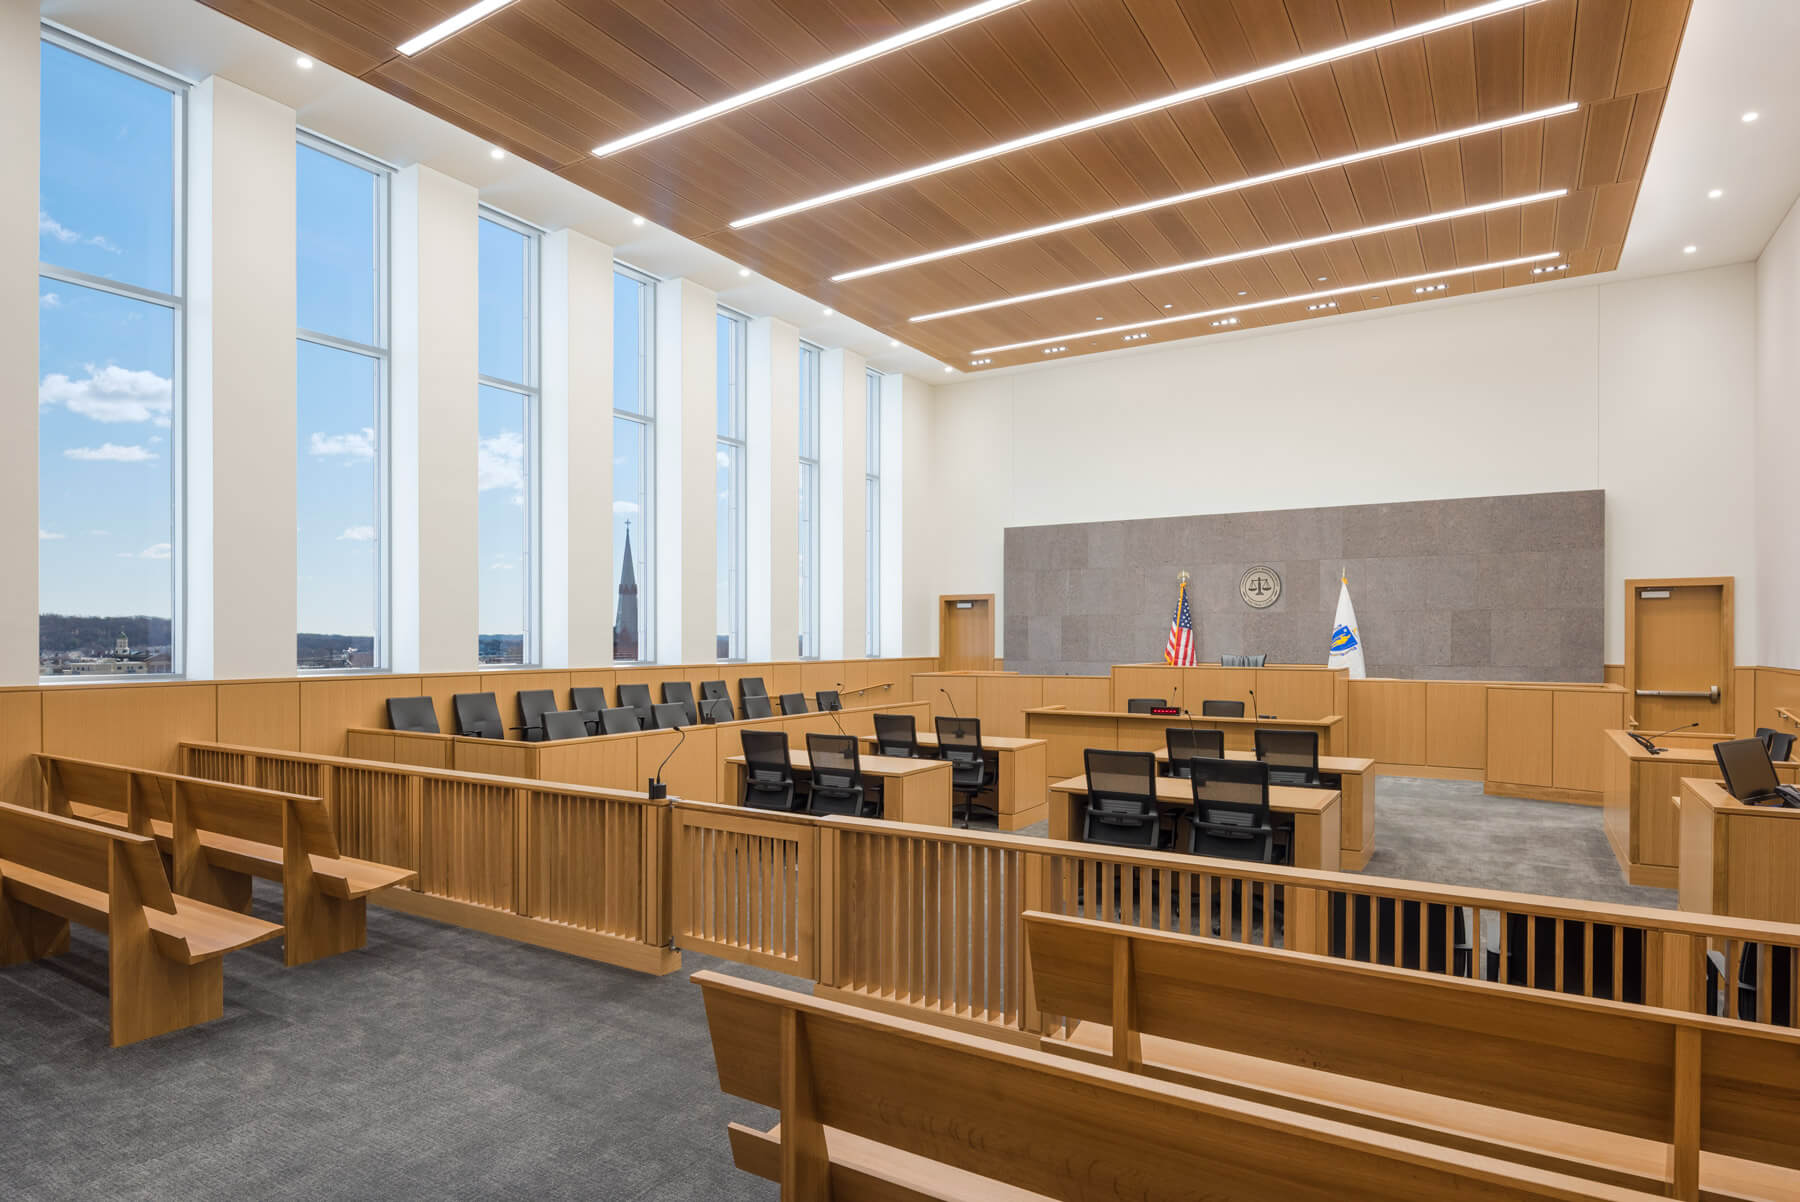 Angled view of warm, wooden courtroom with white walls and views of the sky.